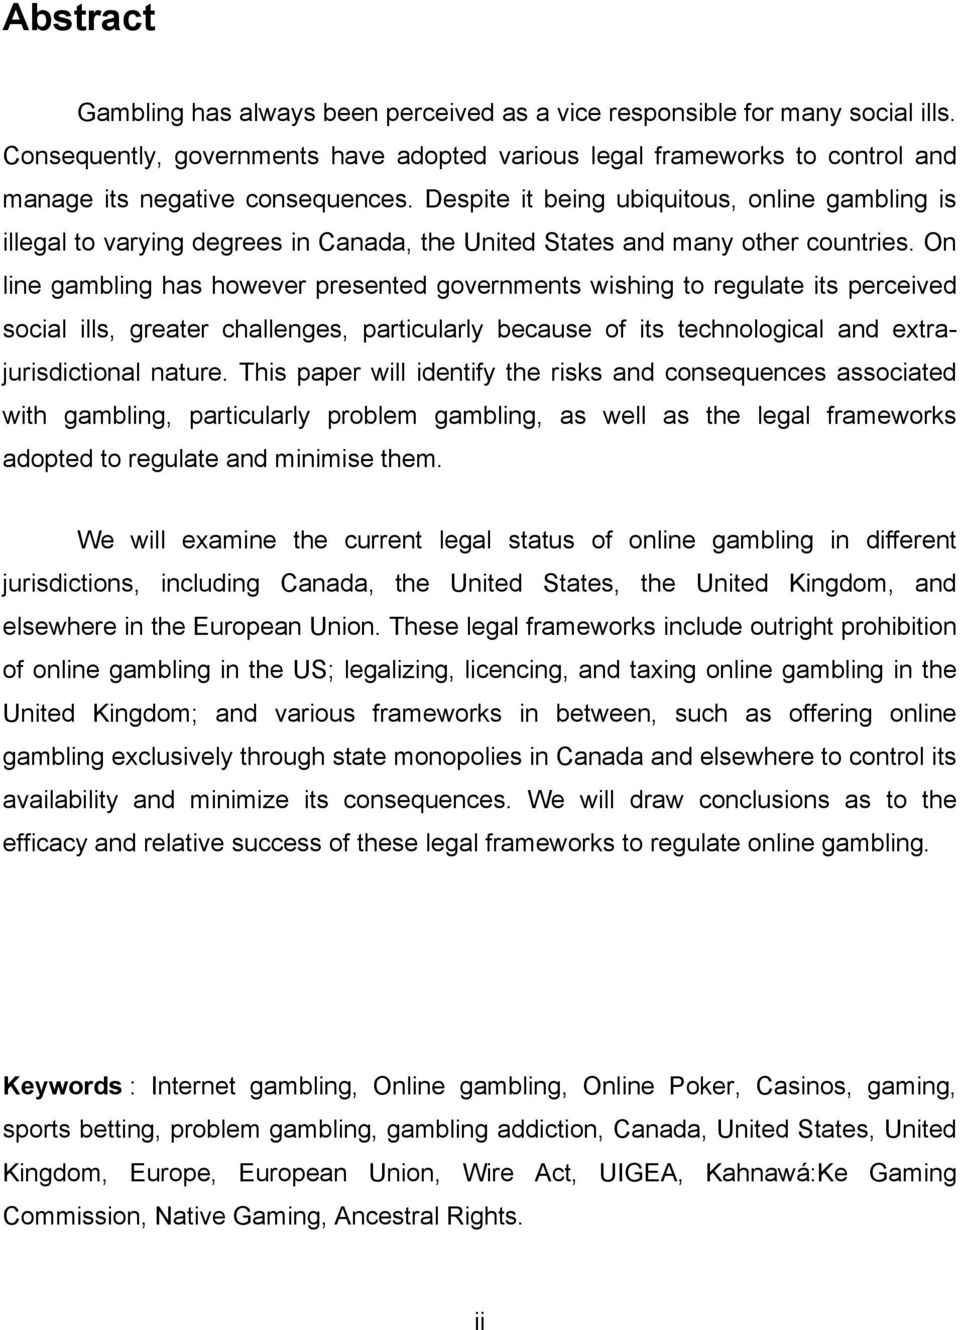 On line gambling has however presented governments wishing to regulate its perceived social ills, greater challenges, particularly because of its technological and extrajurisdictional nature.